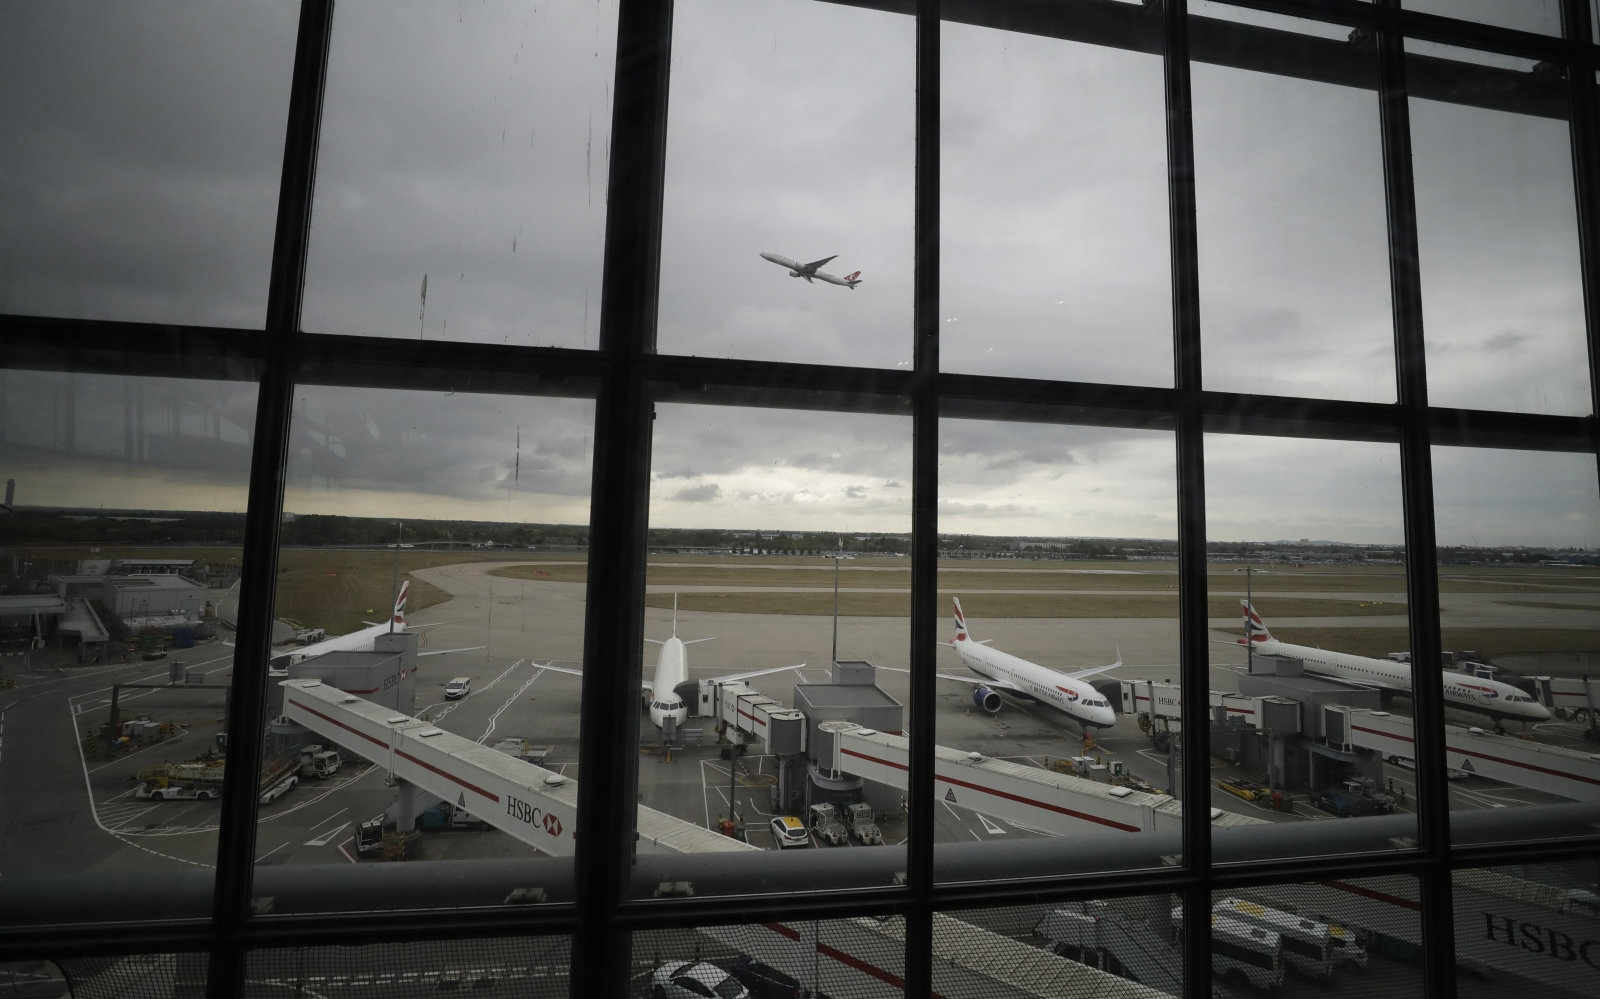 Heathrow Airport installs anti-drone system that can locate UAV pilots | DeviceDaily.com